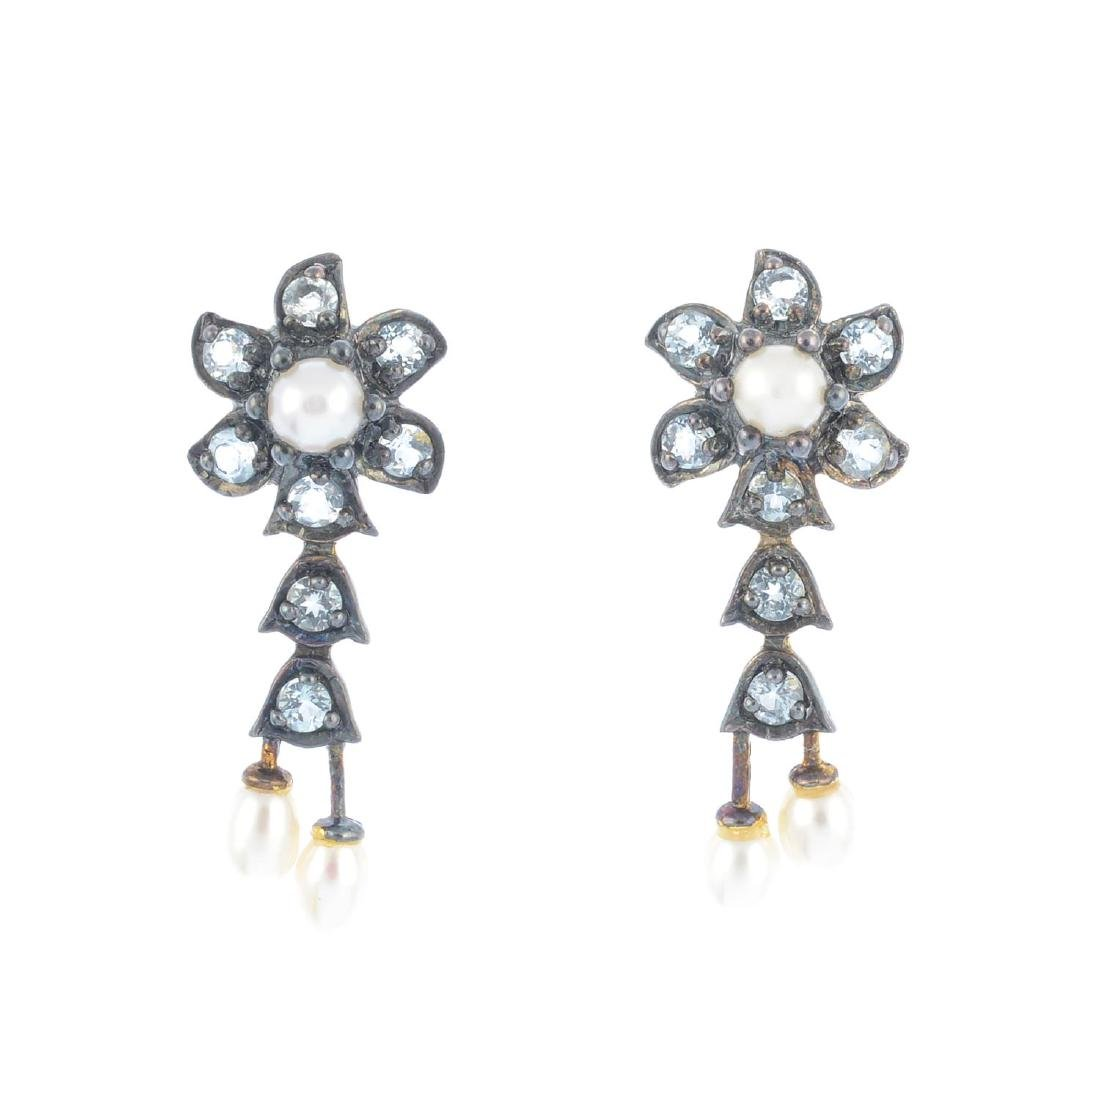 A pair of cultured pearl and cubic zirconia earrings.